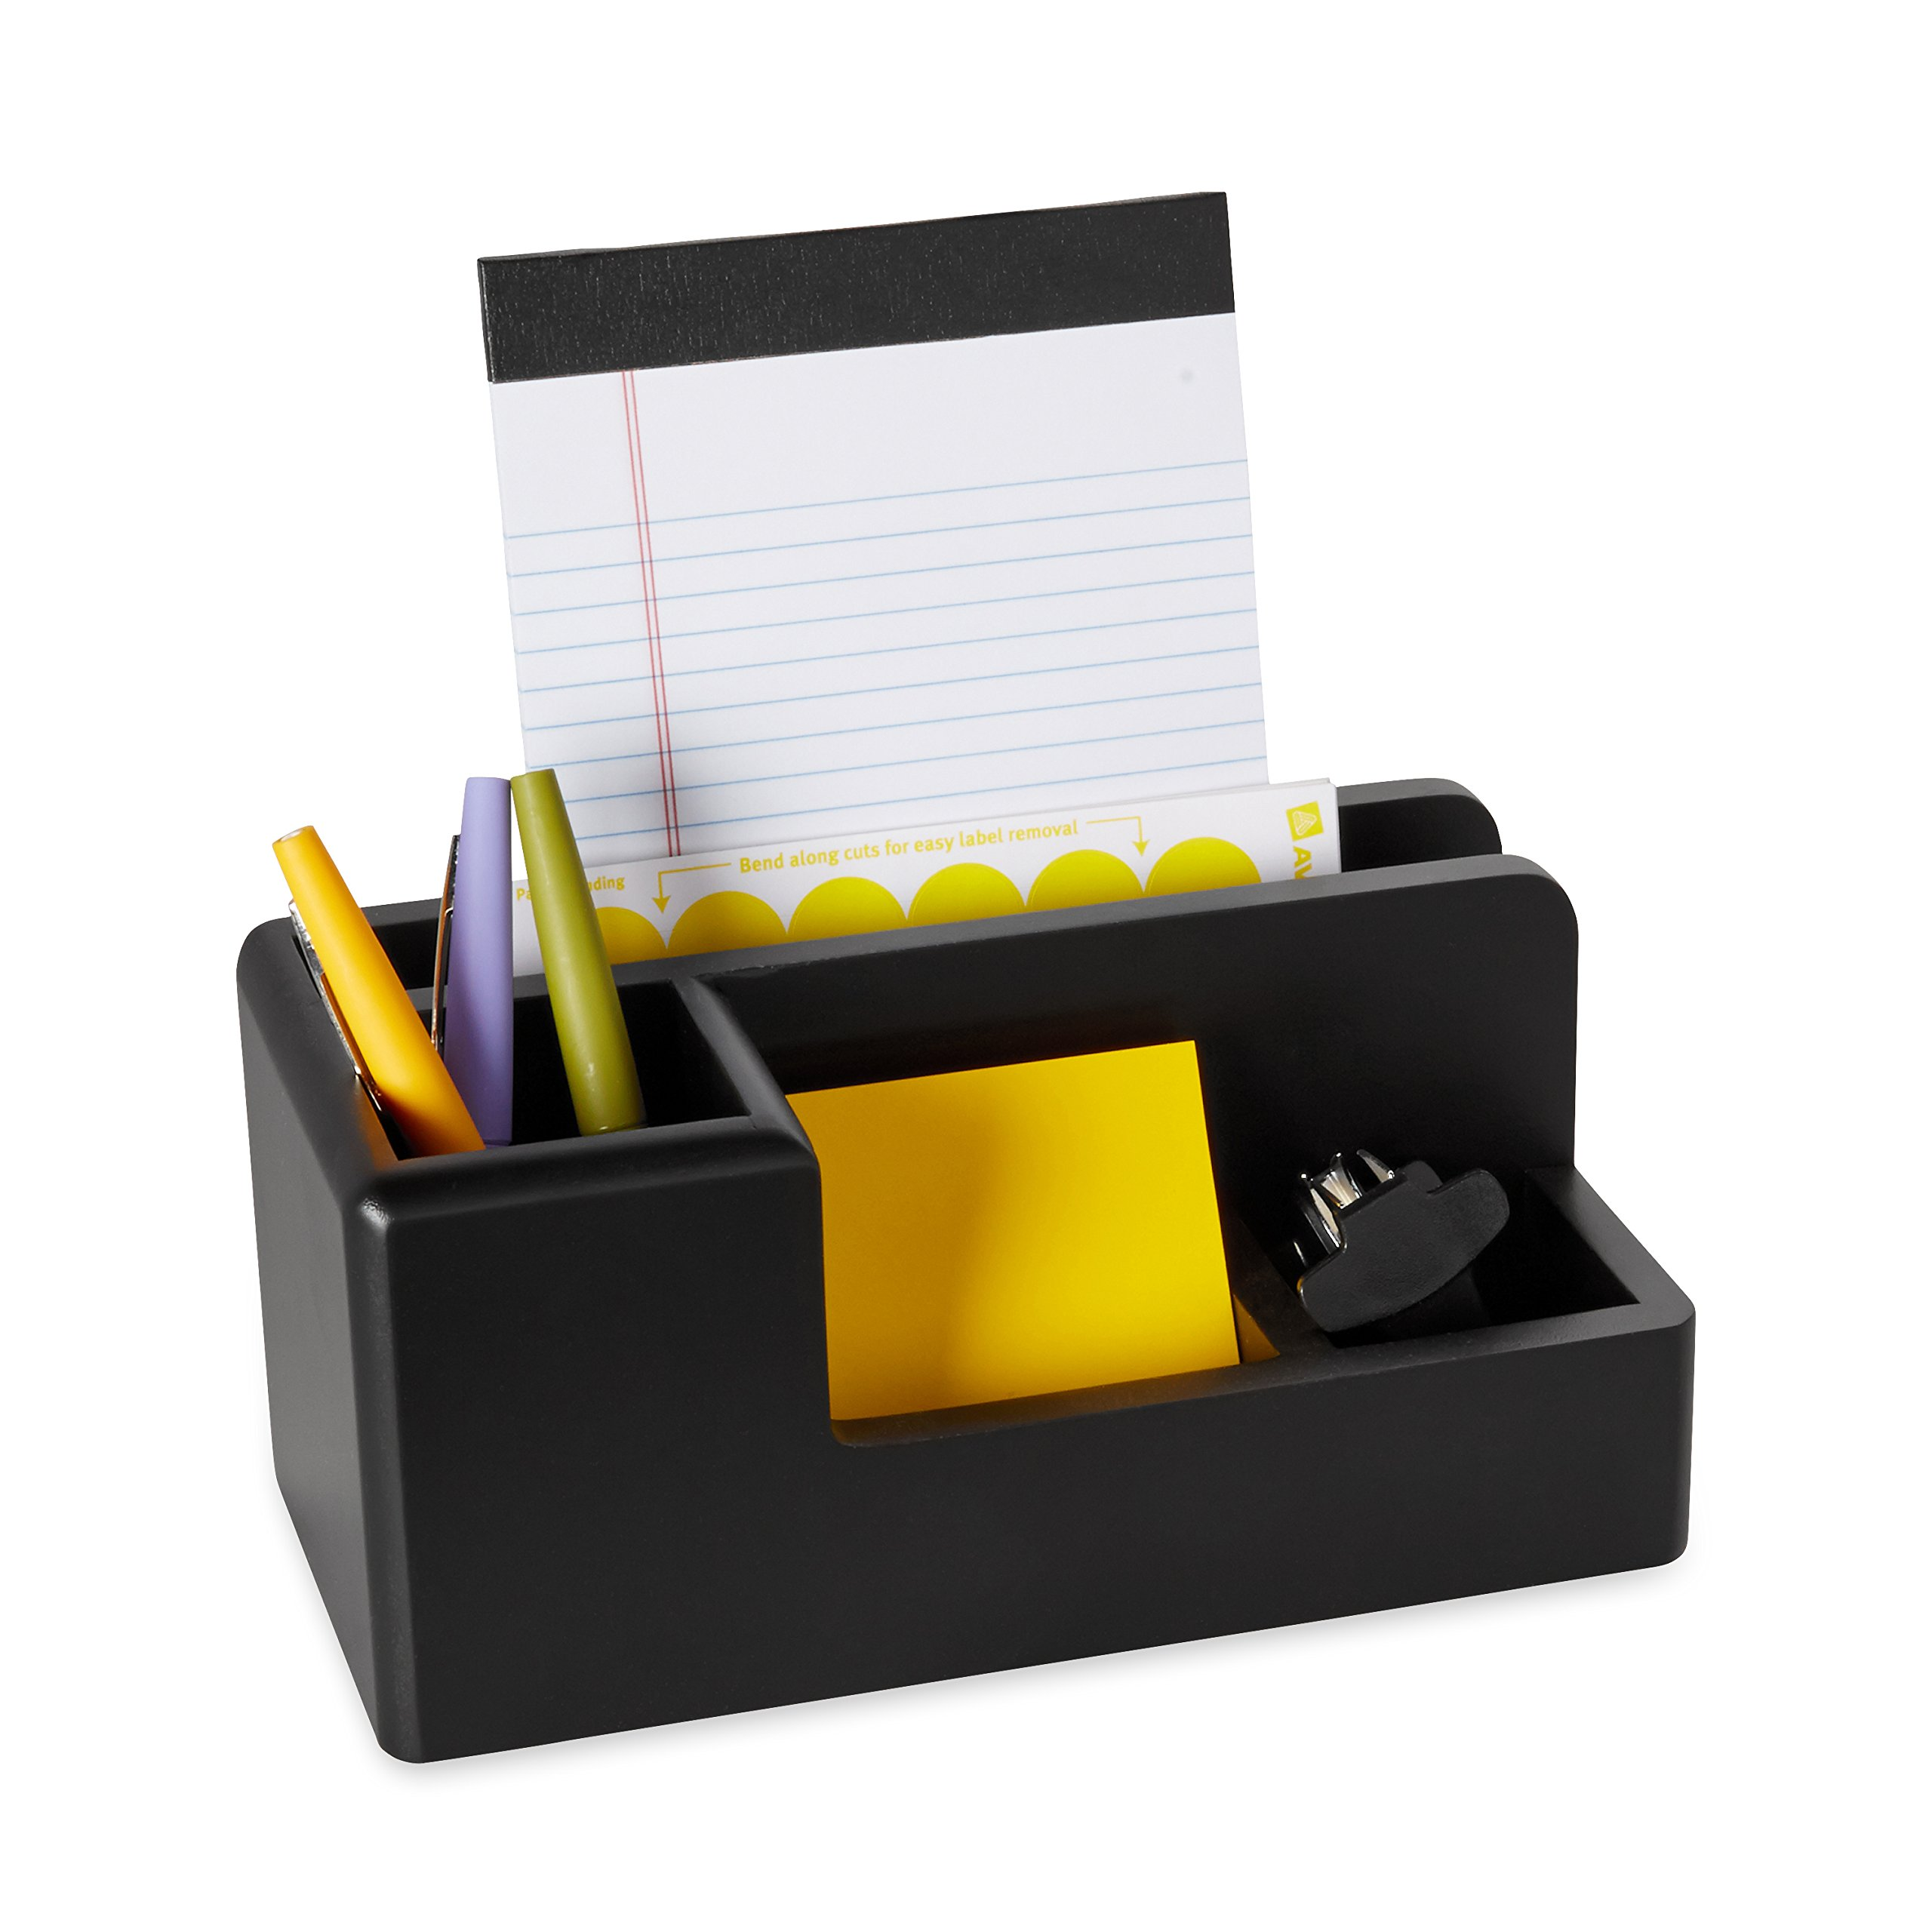 Rolodex Wood Tones Collection Desk Organizer, Black (62537) by Rolodex (Image #3)